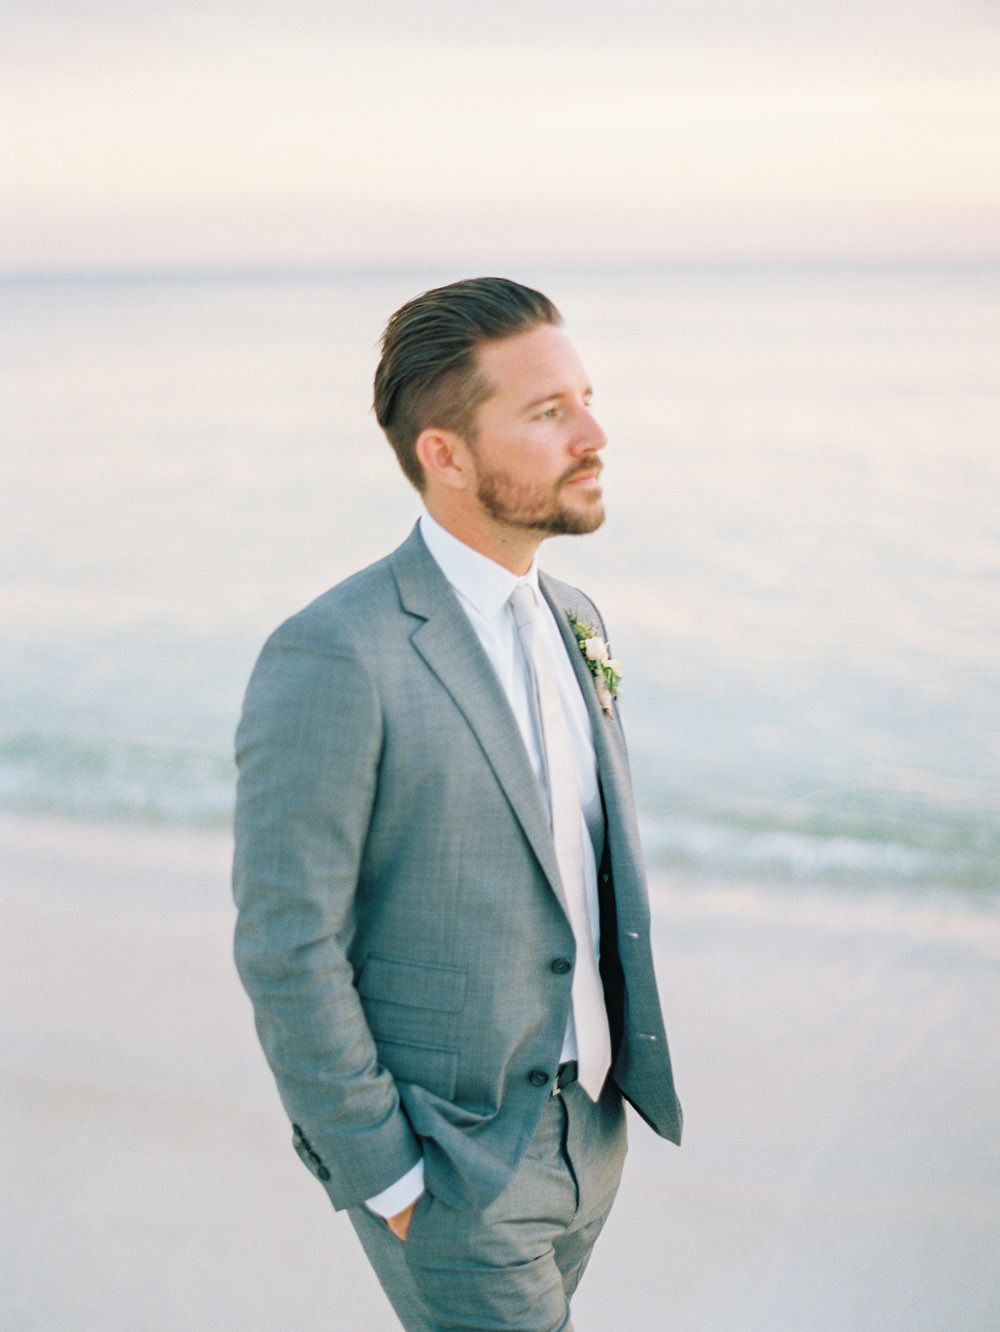 Modern Minimalist Rosemary Beach Wedding in Florida | Beach wedding ...